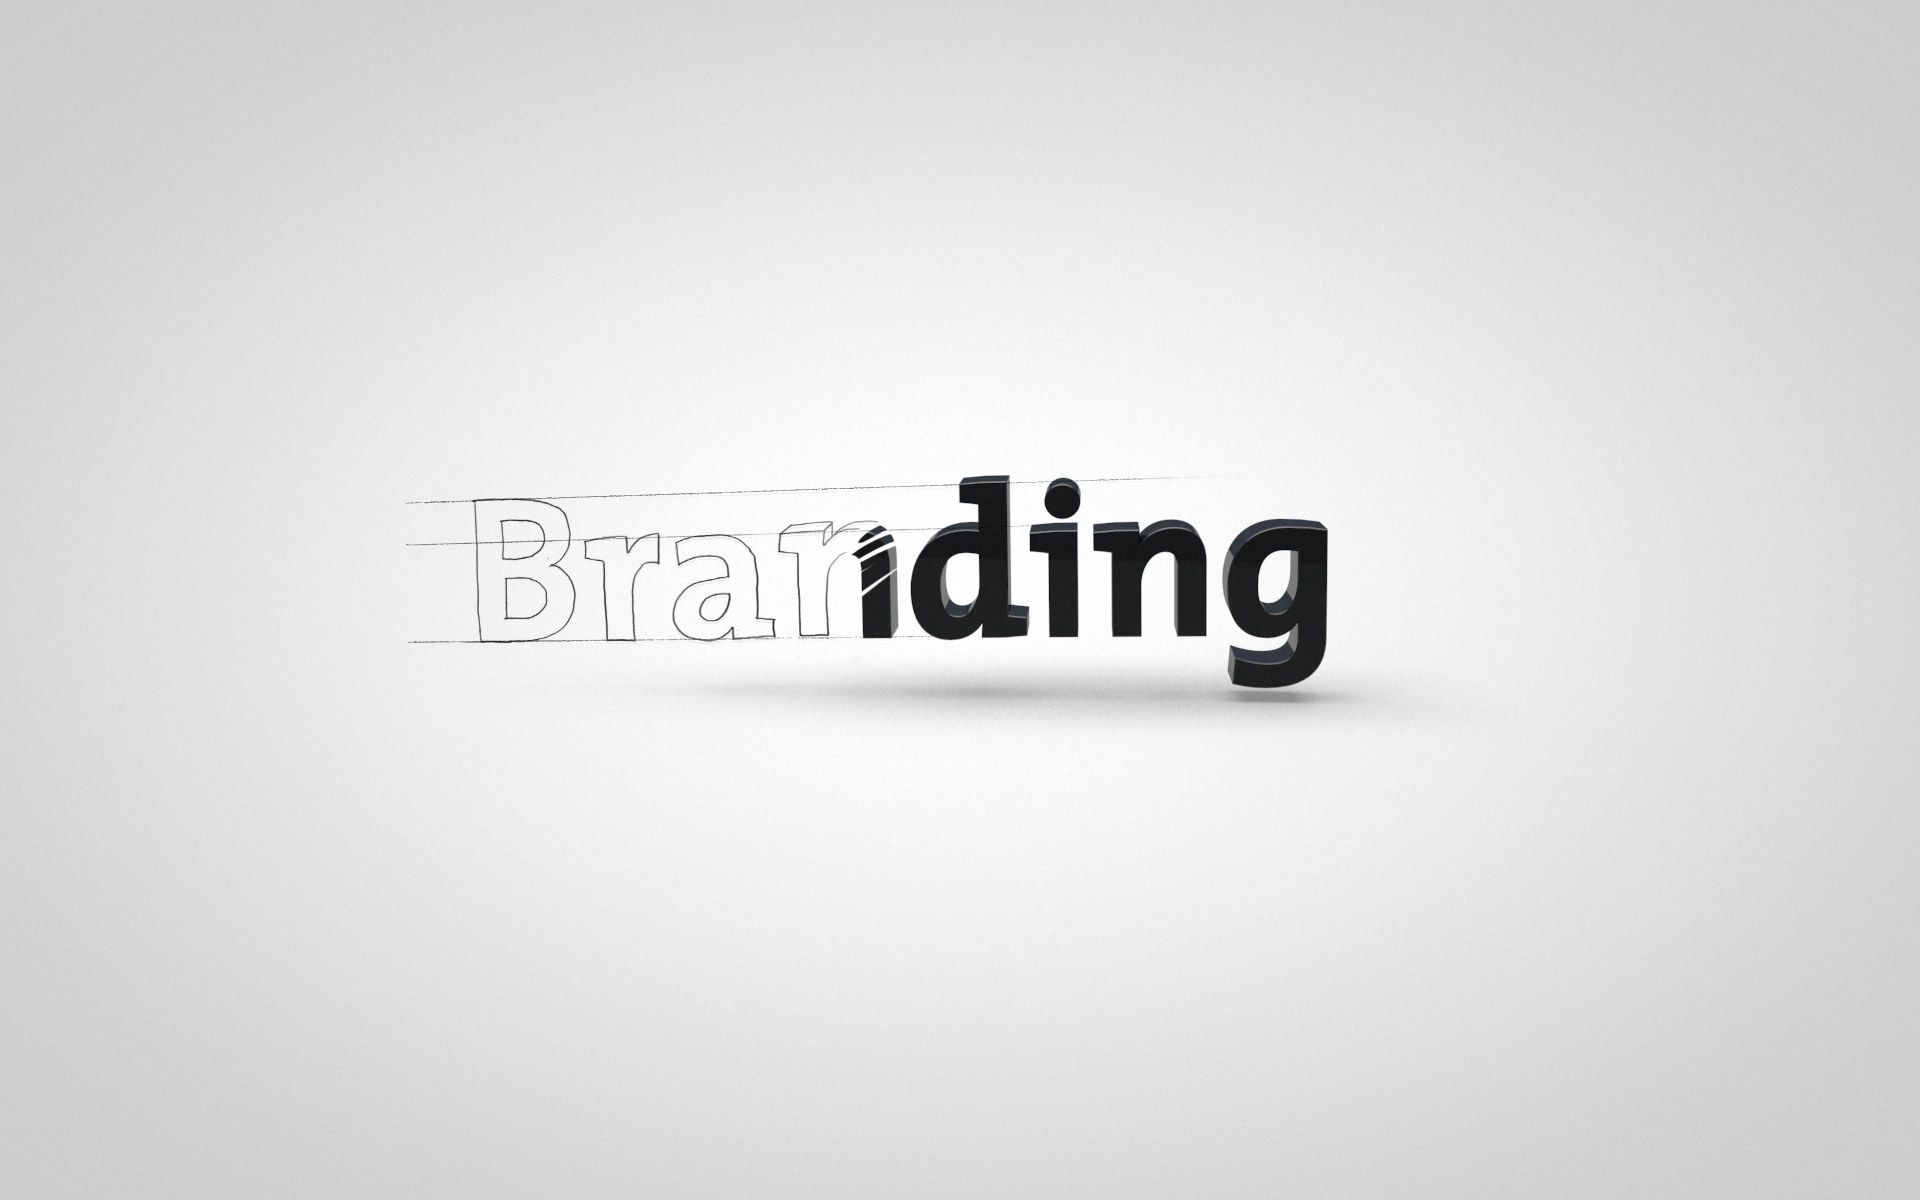 Branding Building A Connection Between Customers And A Company Service Or Product Establishing A Brand That Customers Trust Branding Web Design Services Logo Design Services